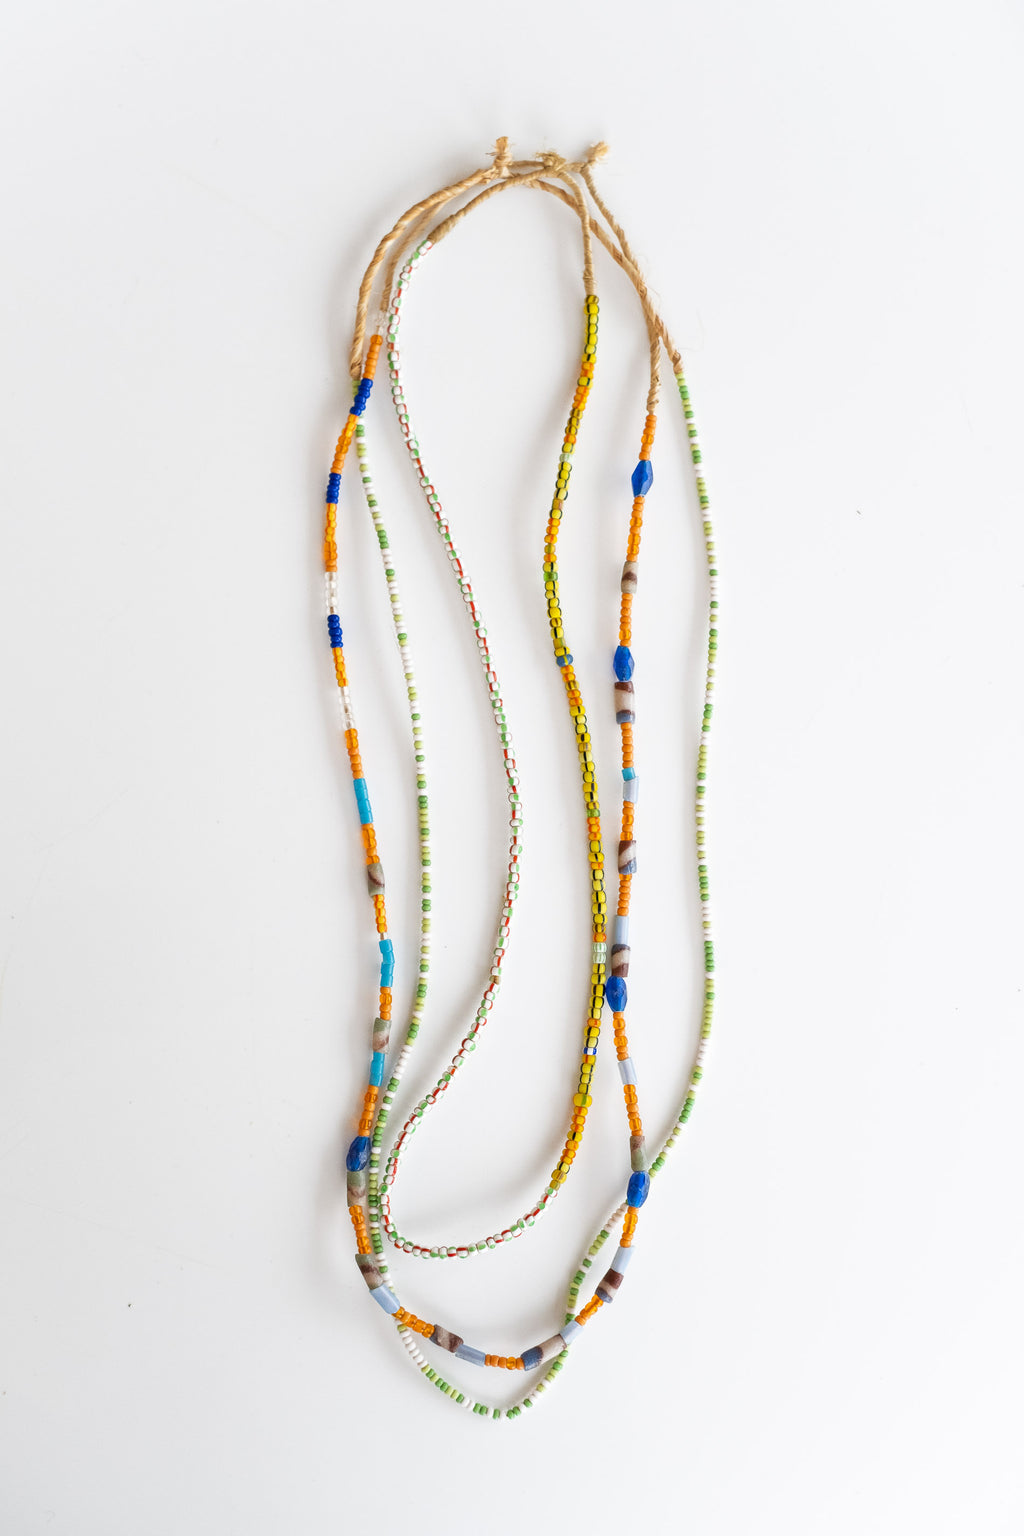 3-STRAND AFRICAN BEADS NO. 4